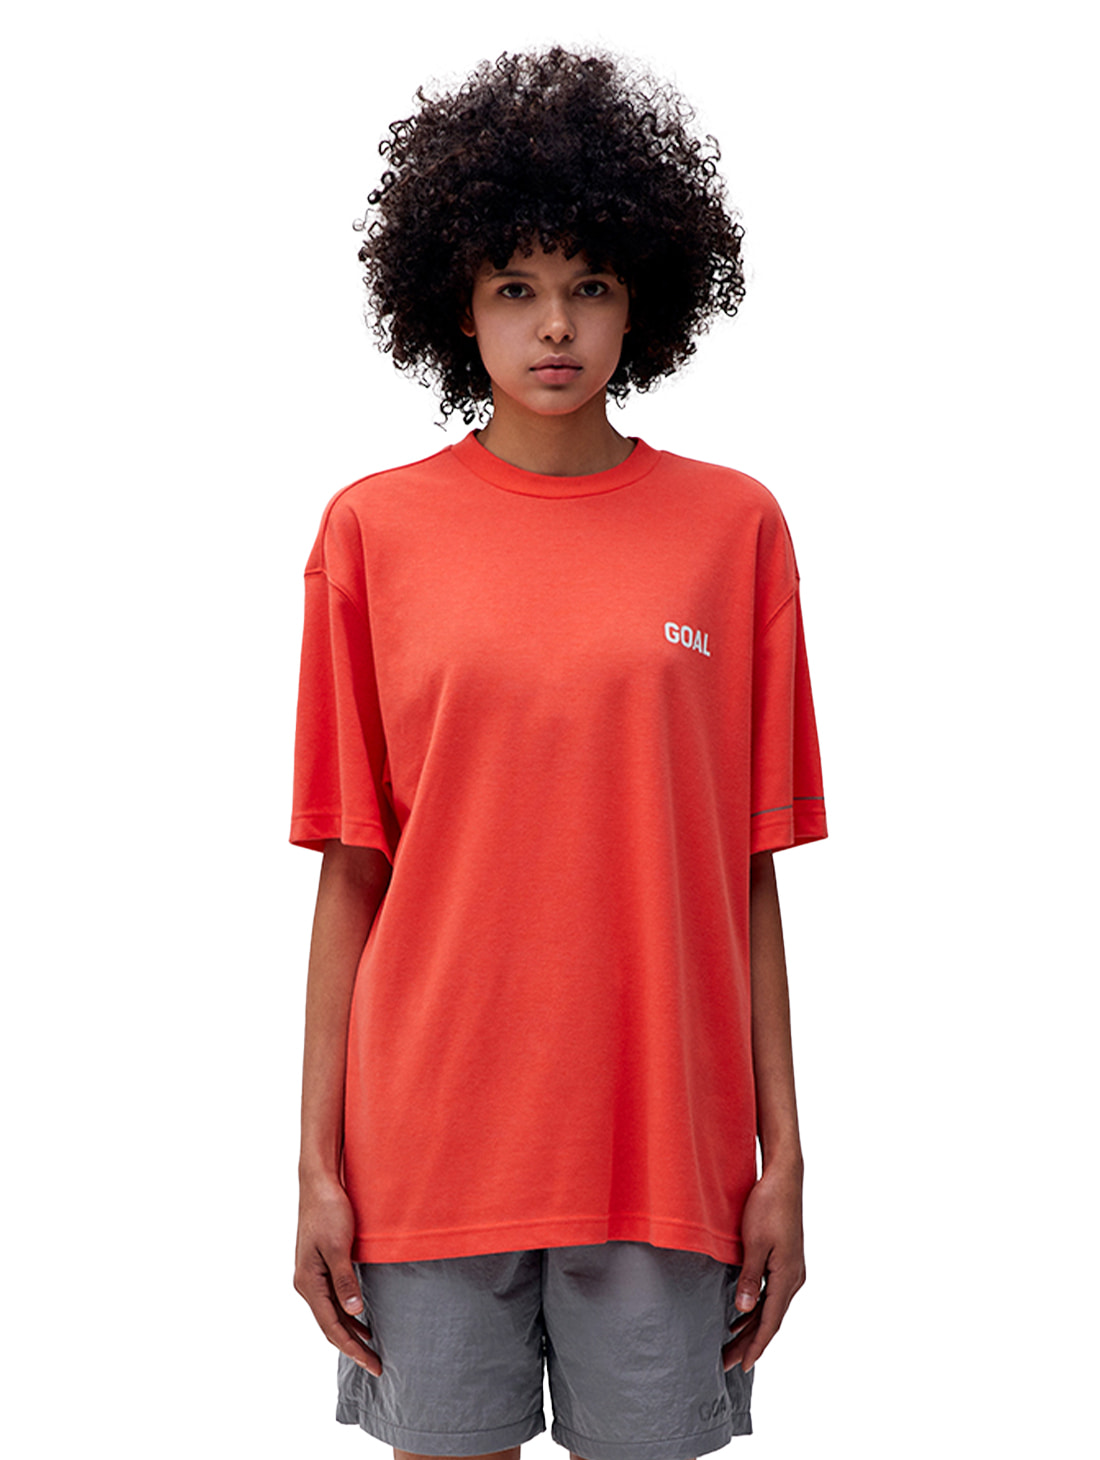 LTG SHORT SLEEVE TEE - ORANGE